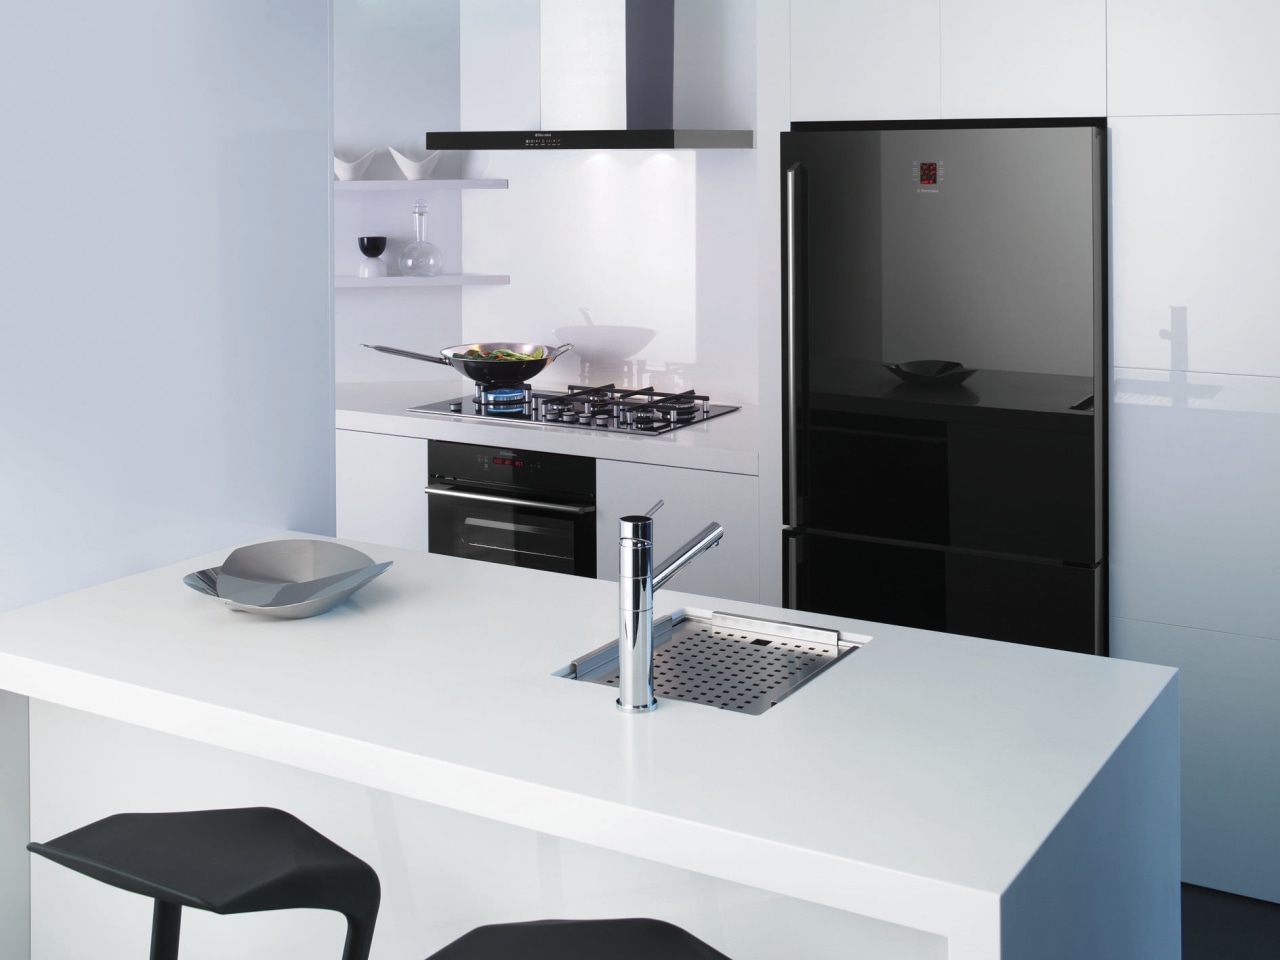 This chic kitchen features a bottom-mount refrigerator, oven, furniture, kitchen, office, product, product design, table, white